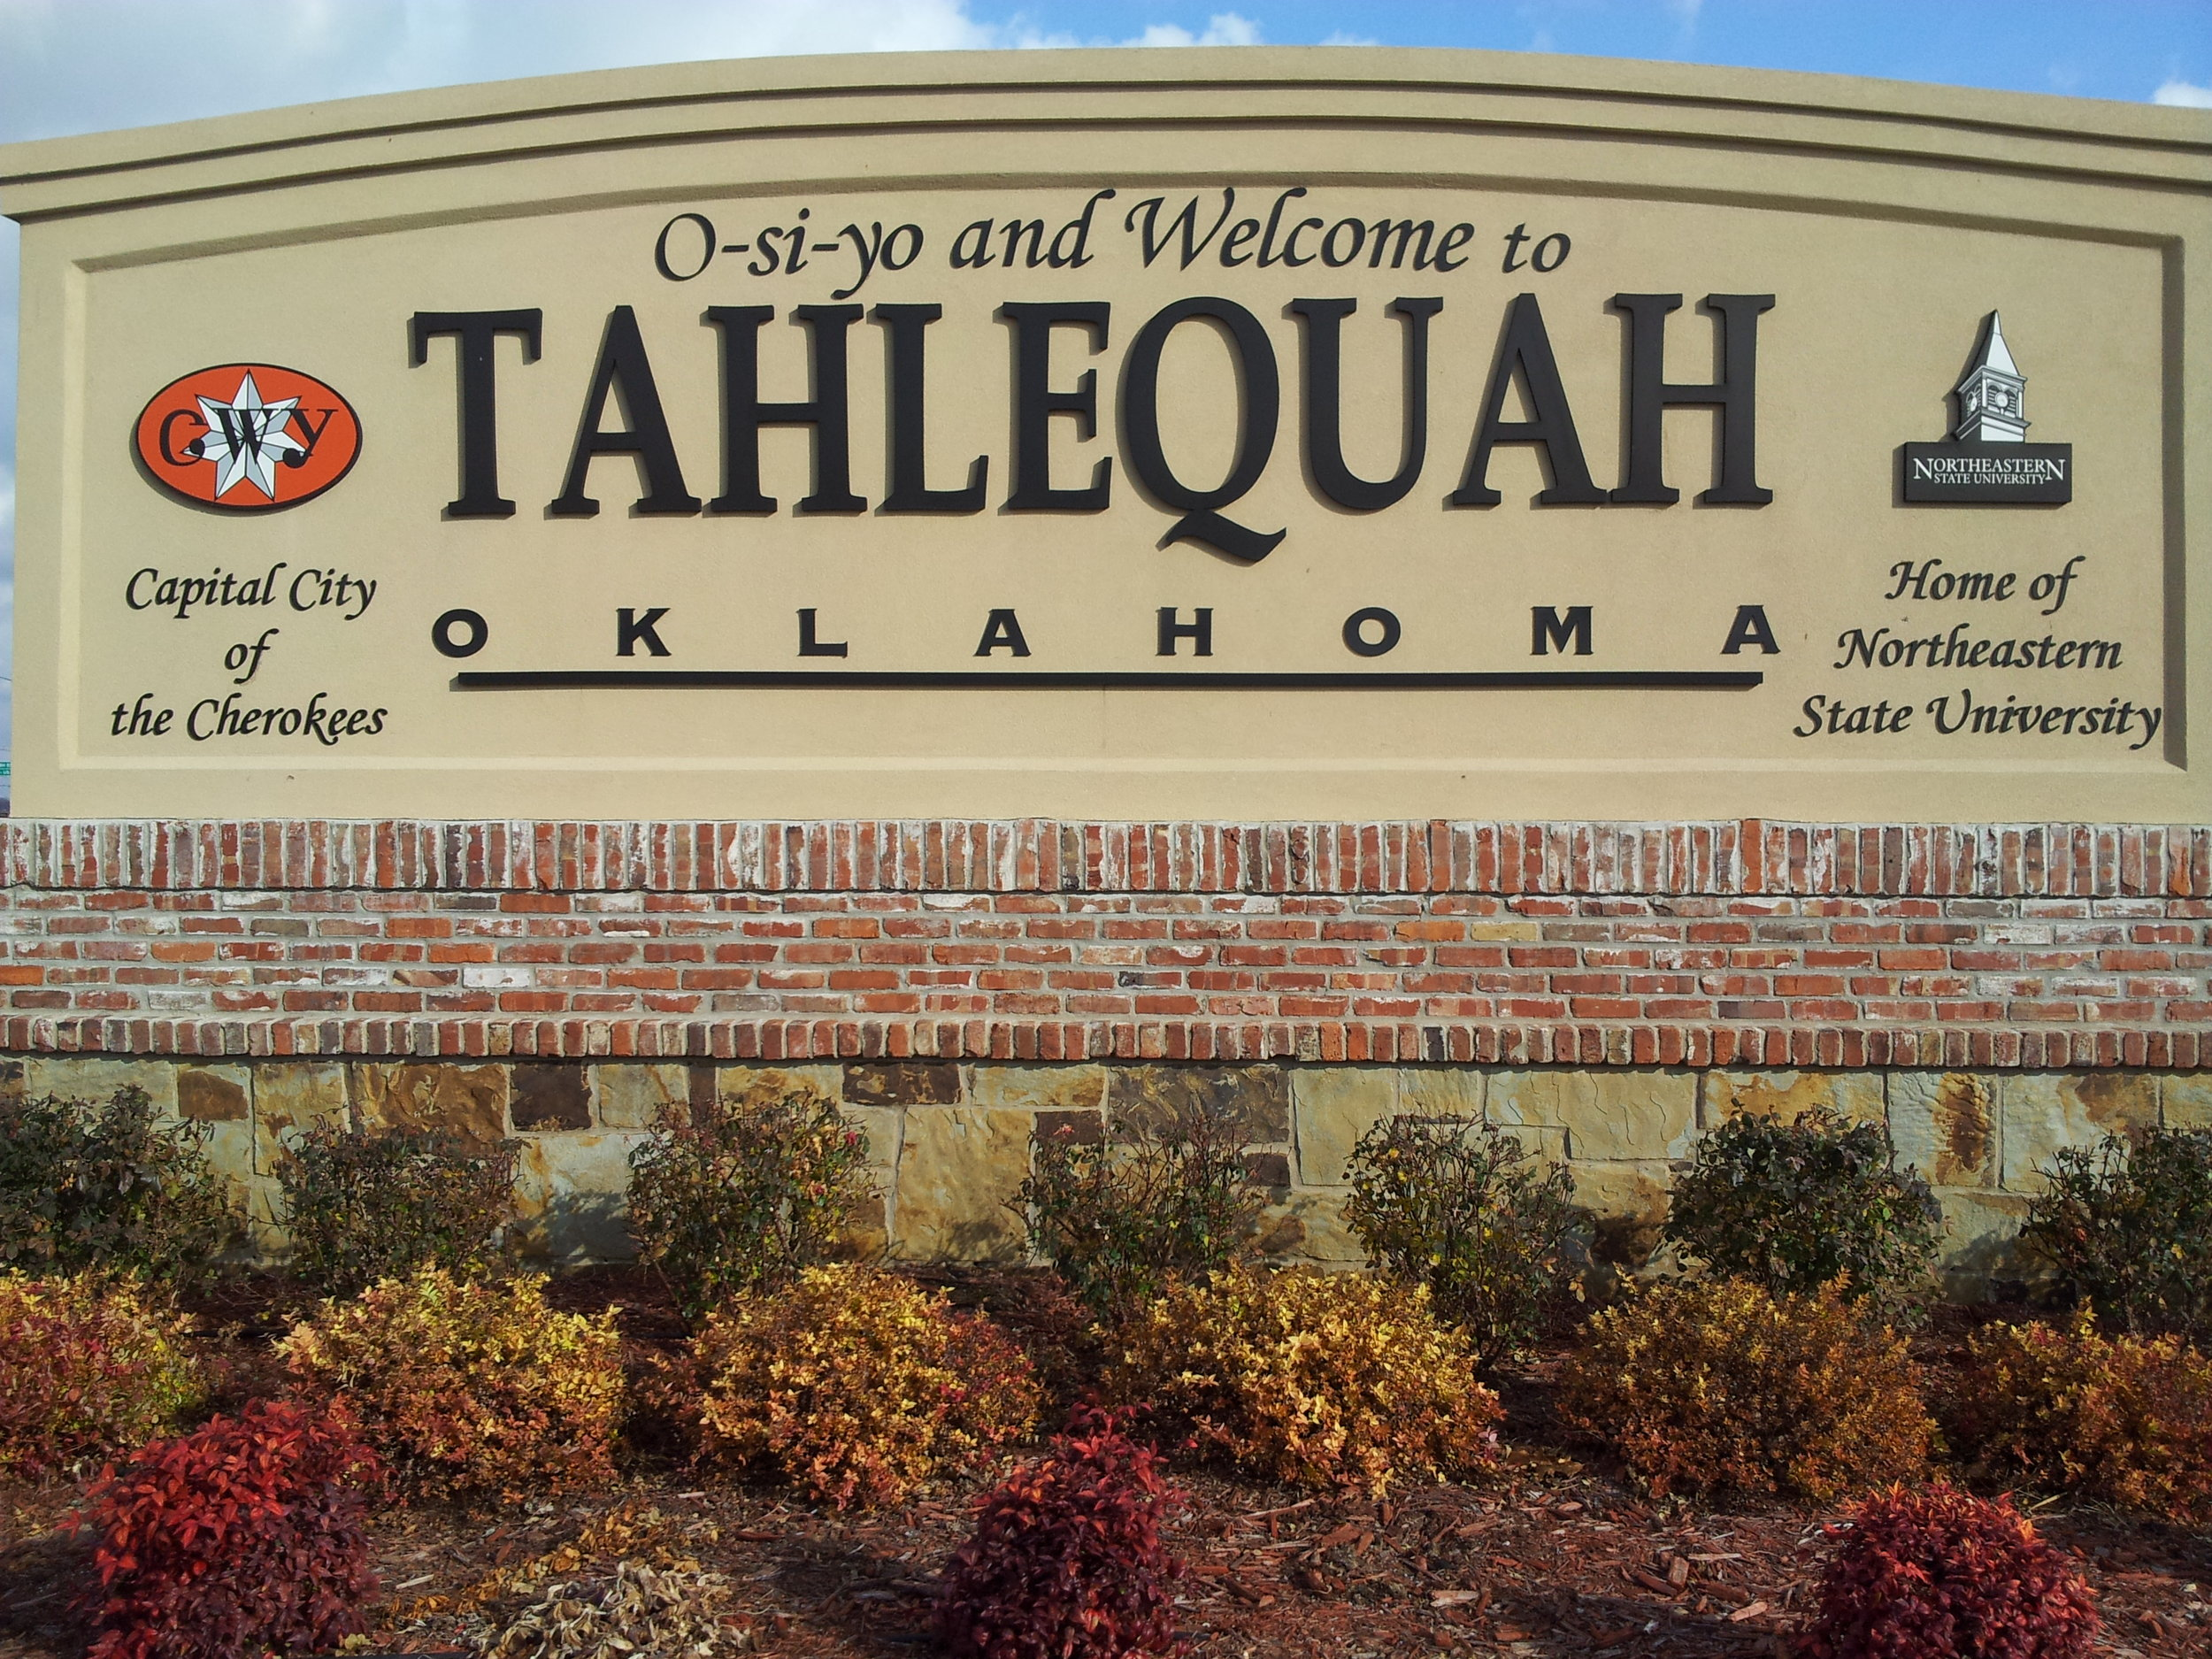 TahlequahRecyclingSign.jpg